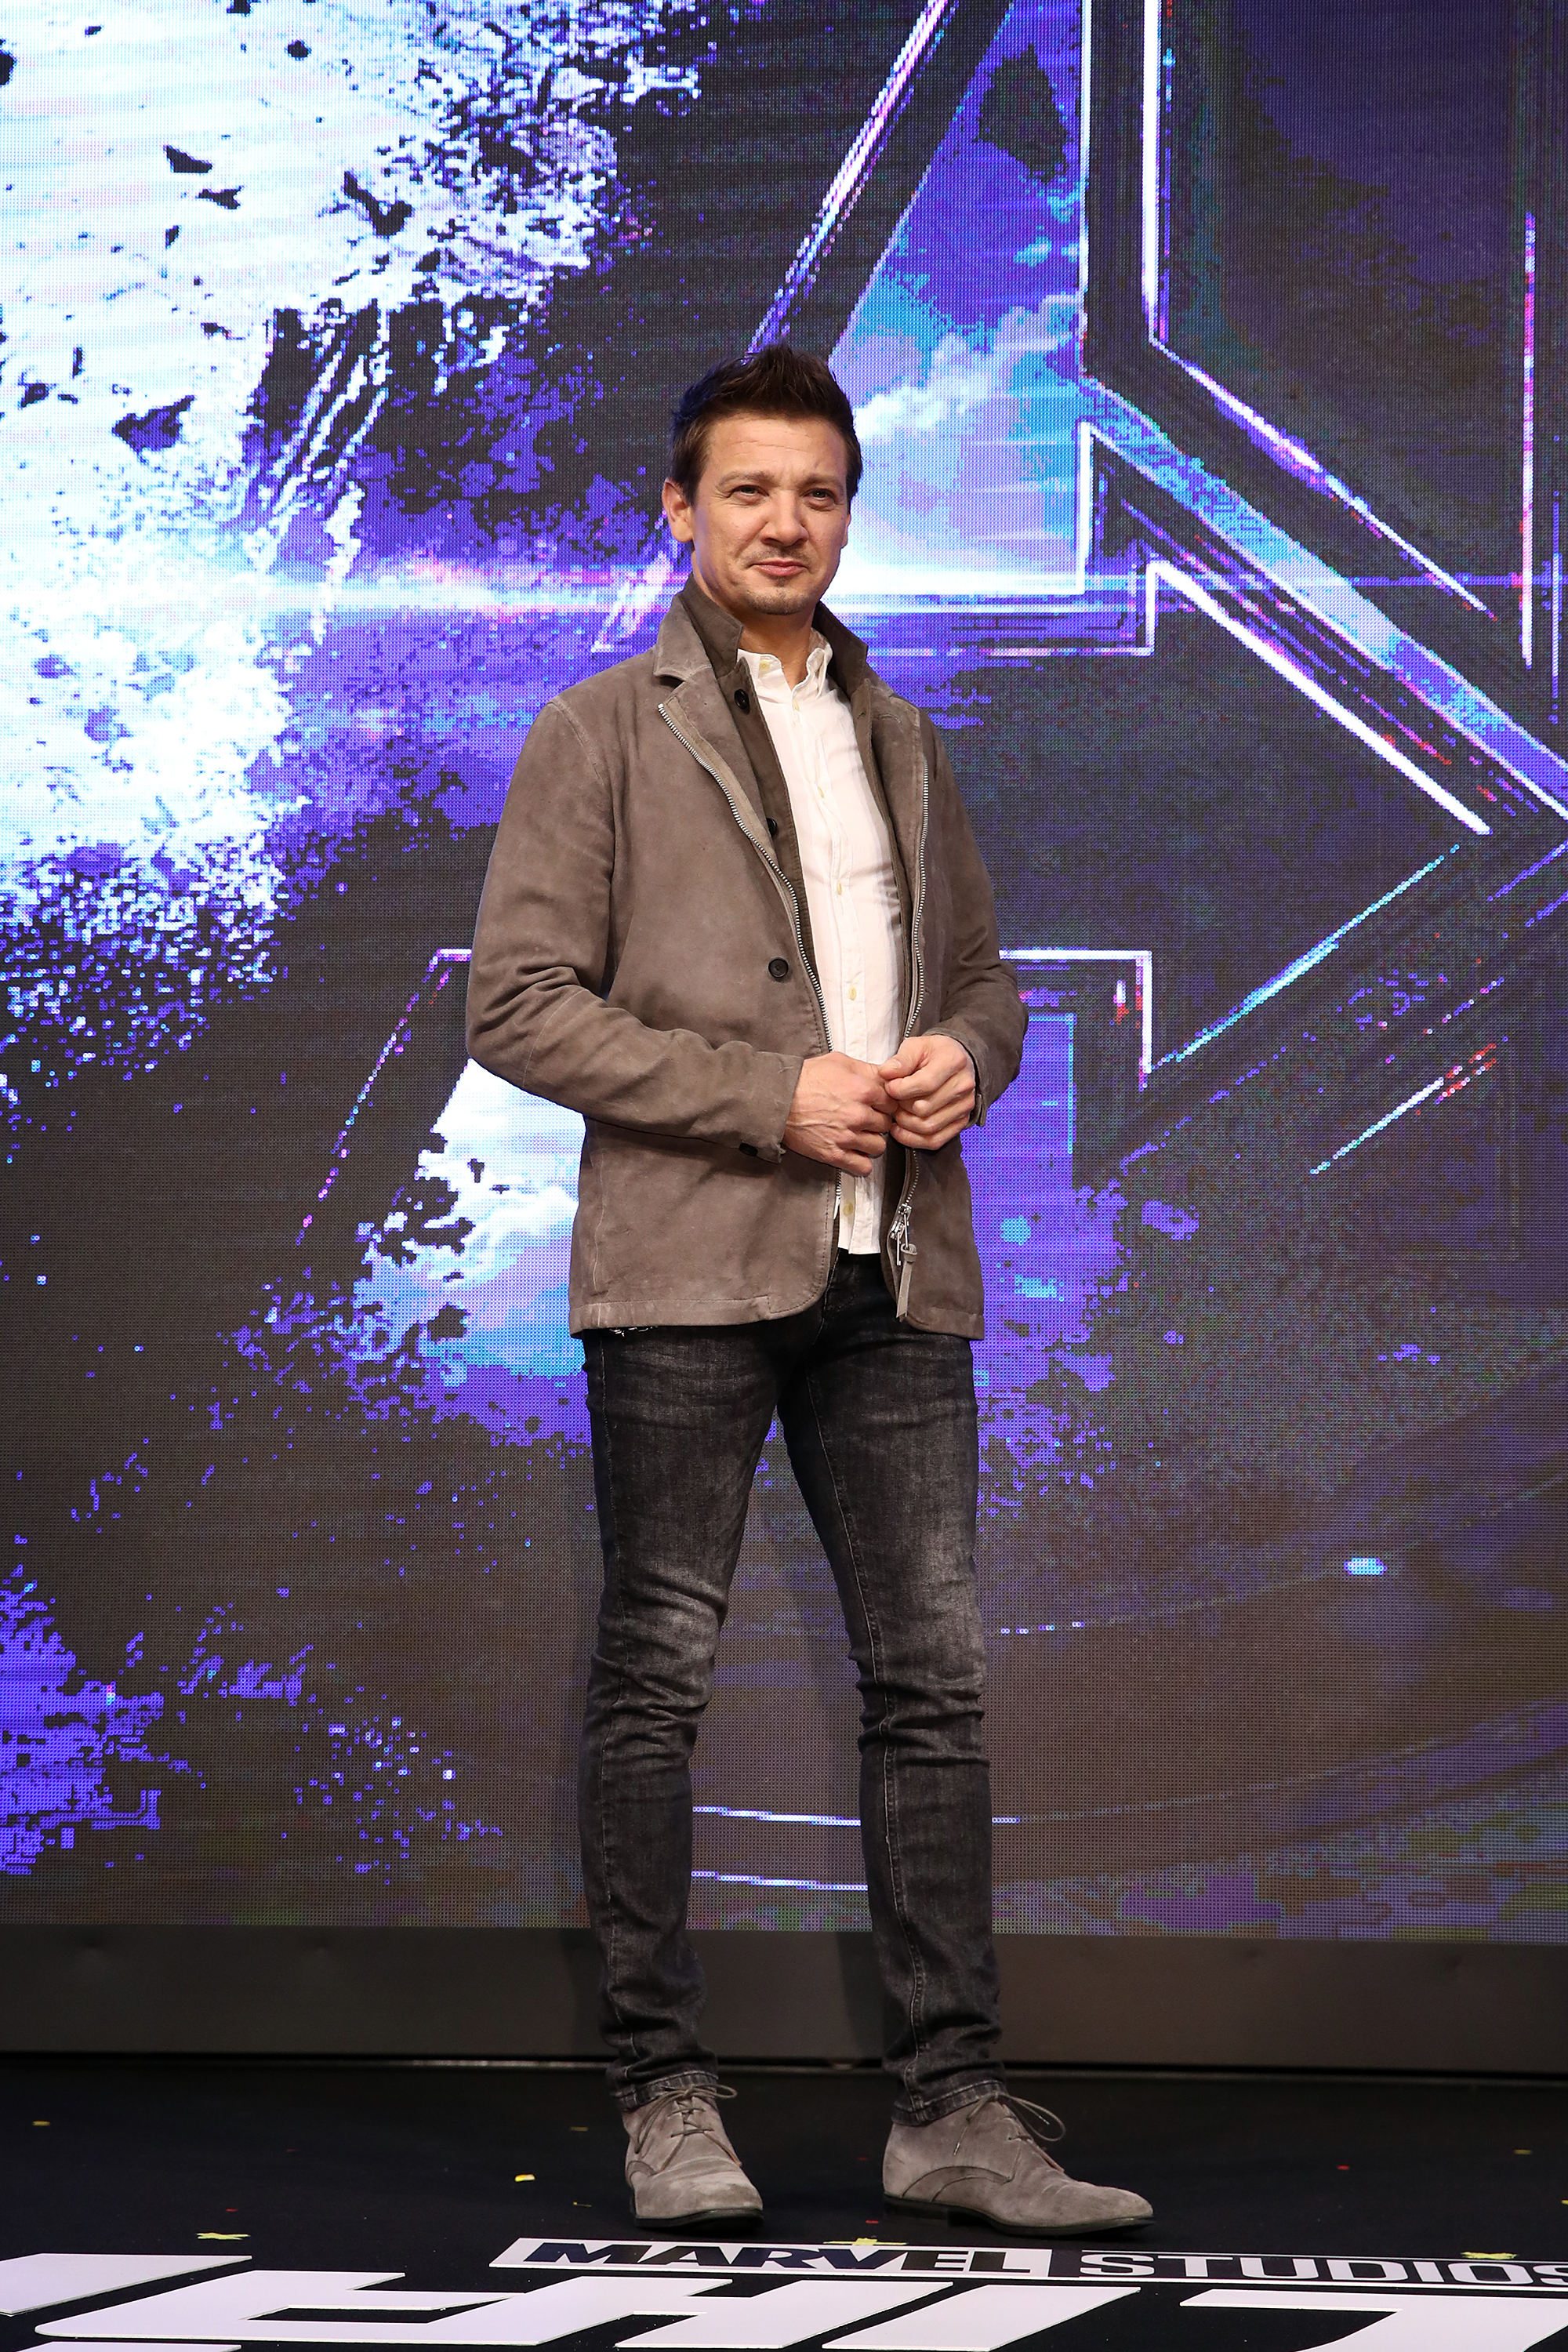 Jeremy Renner attends the press conference for Marvel Studios' 'Avengers: Endgame' South Korea premiere in Seoul, South Korea on April 15, 2019.